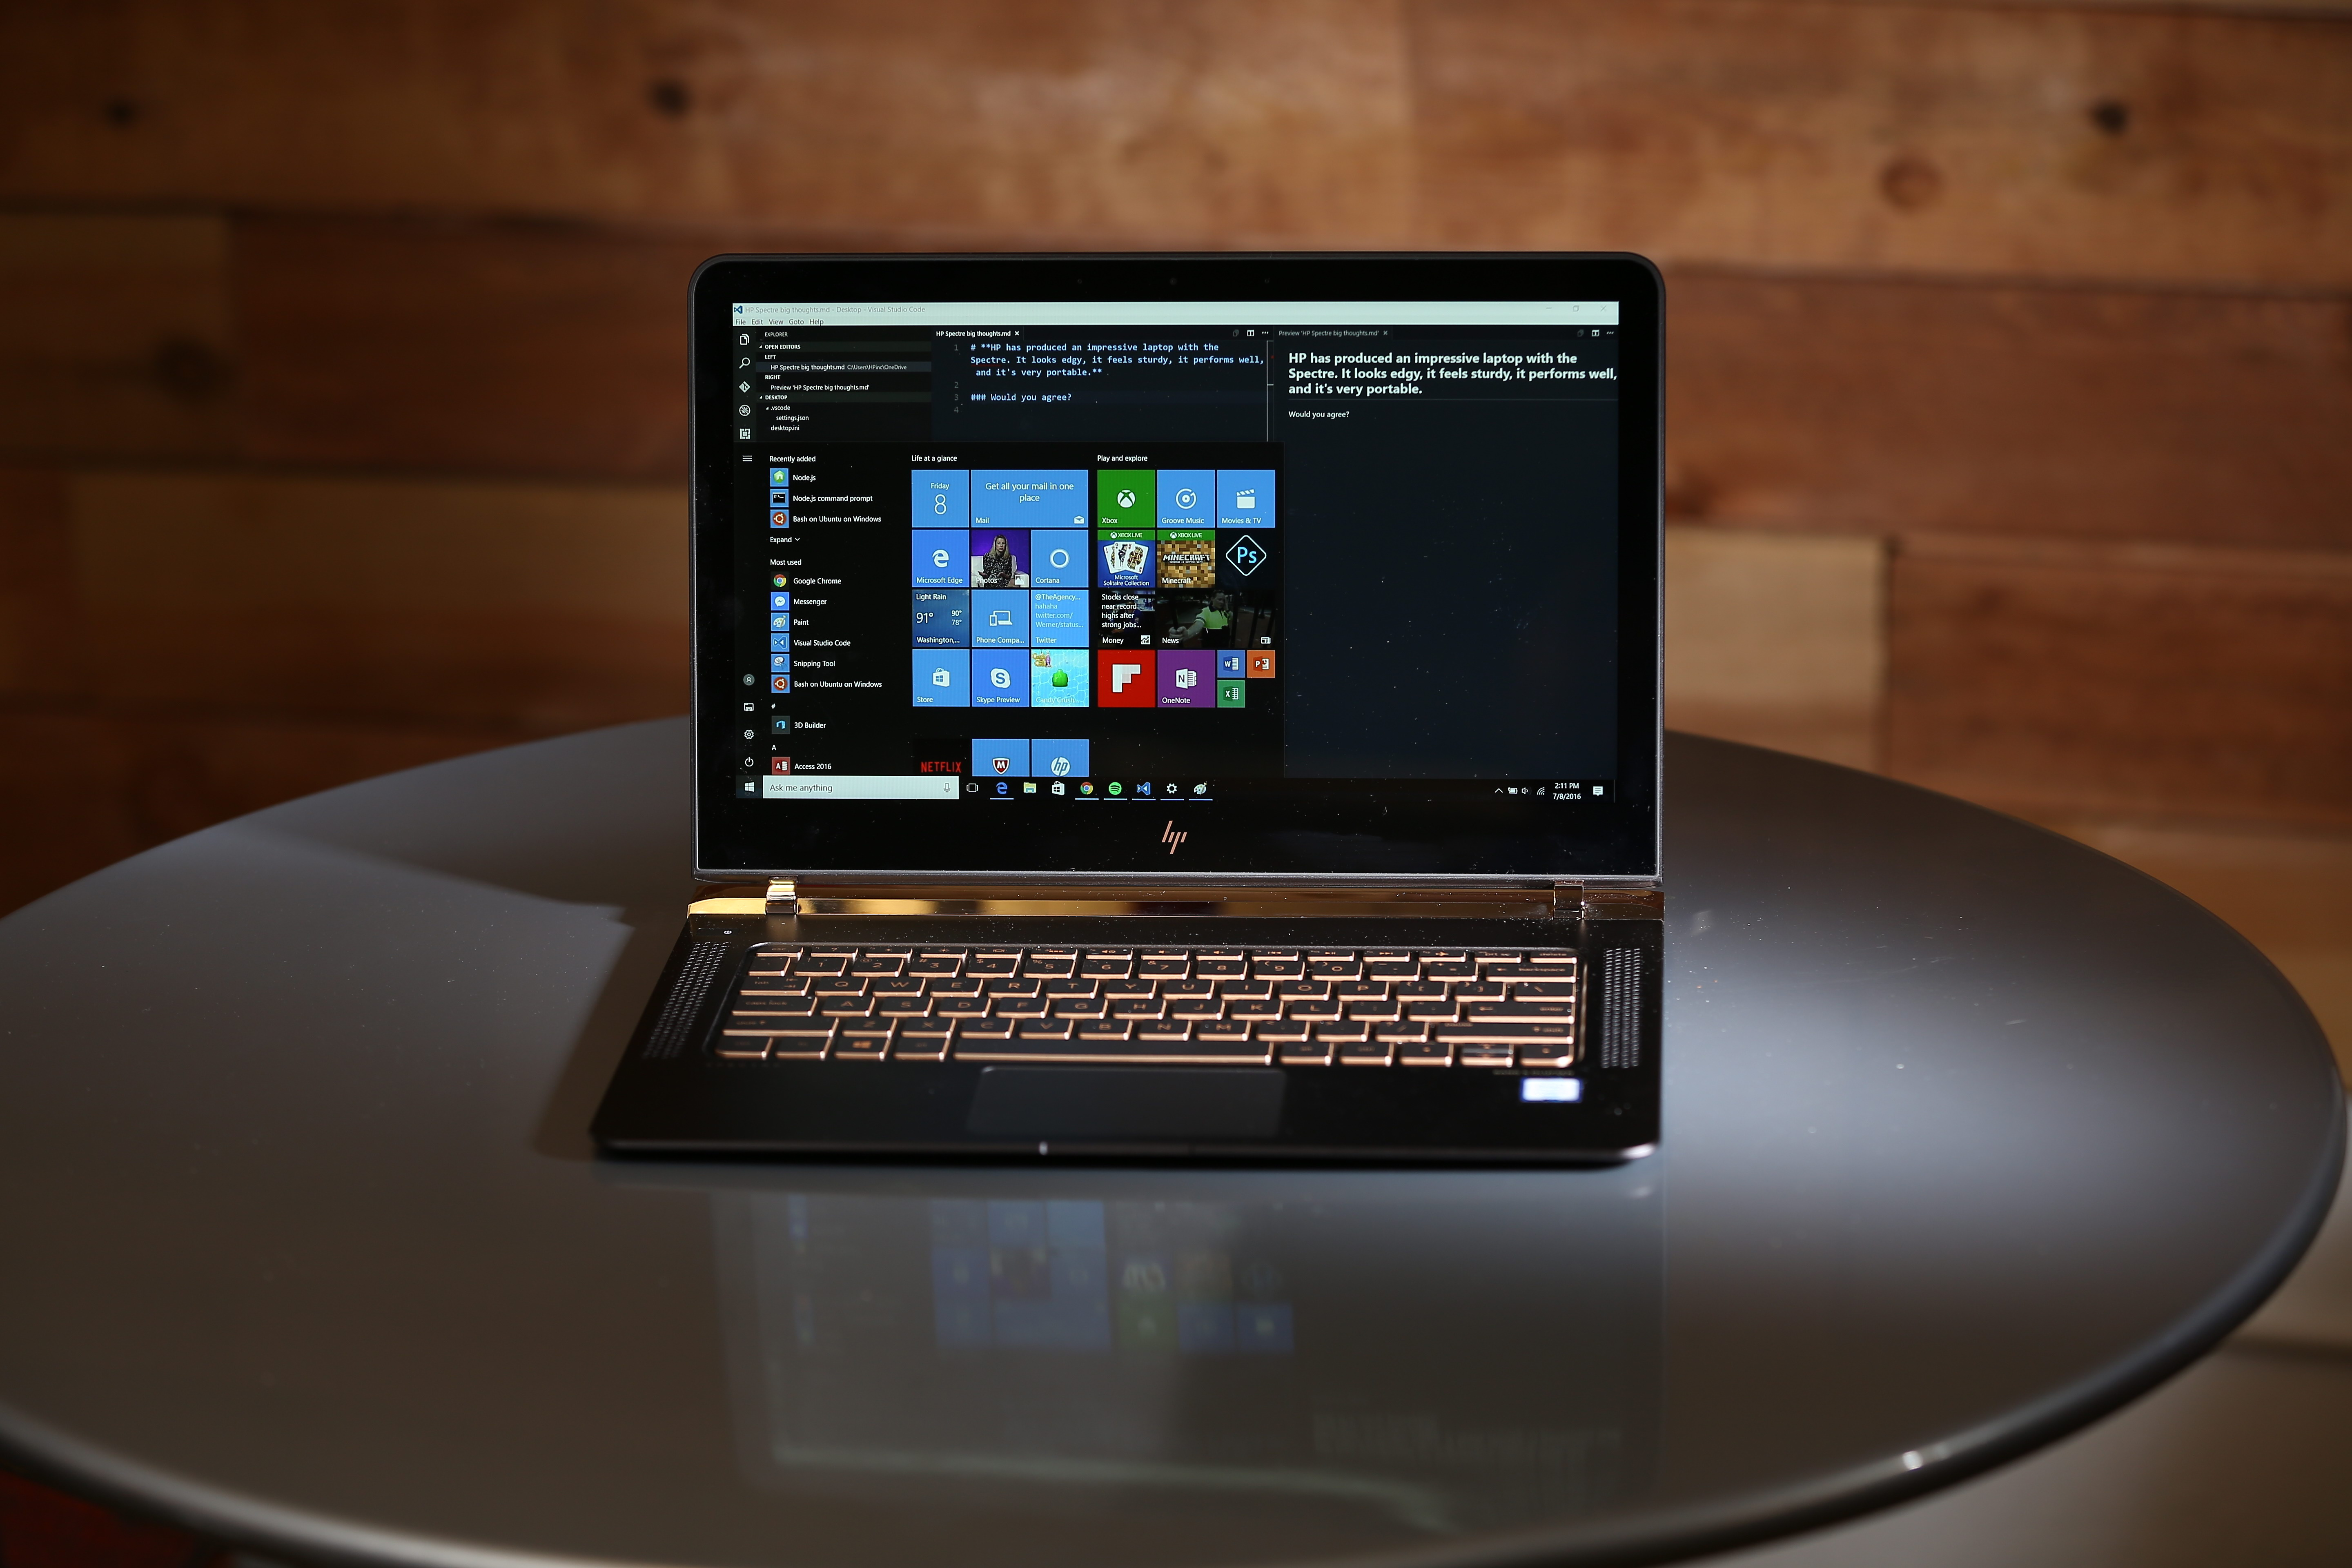 The HP Spectre's battery lasts between two and four hours in my testing.